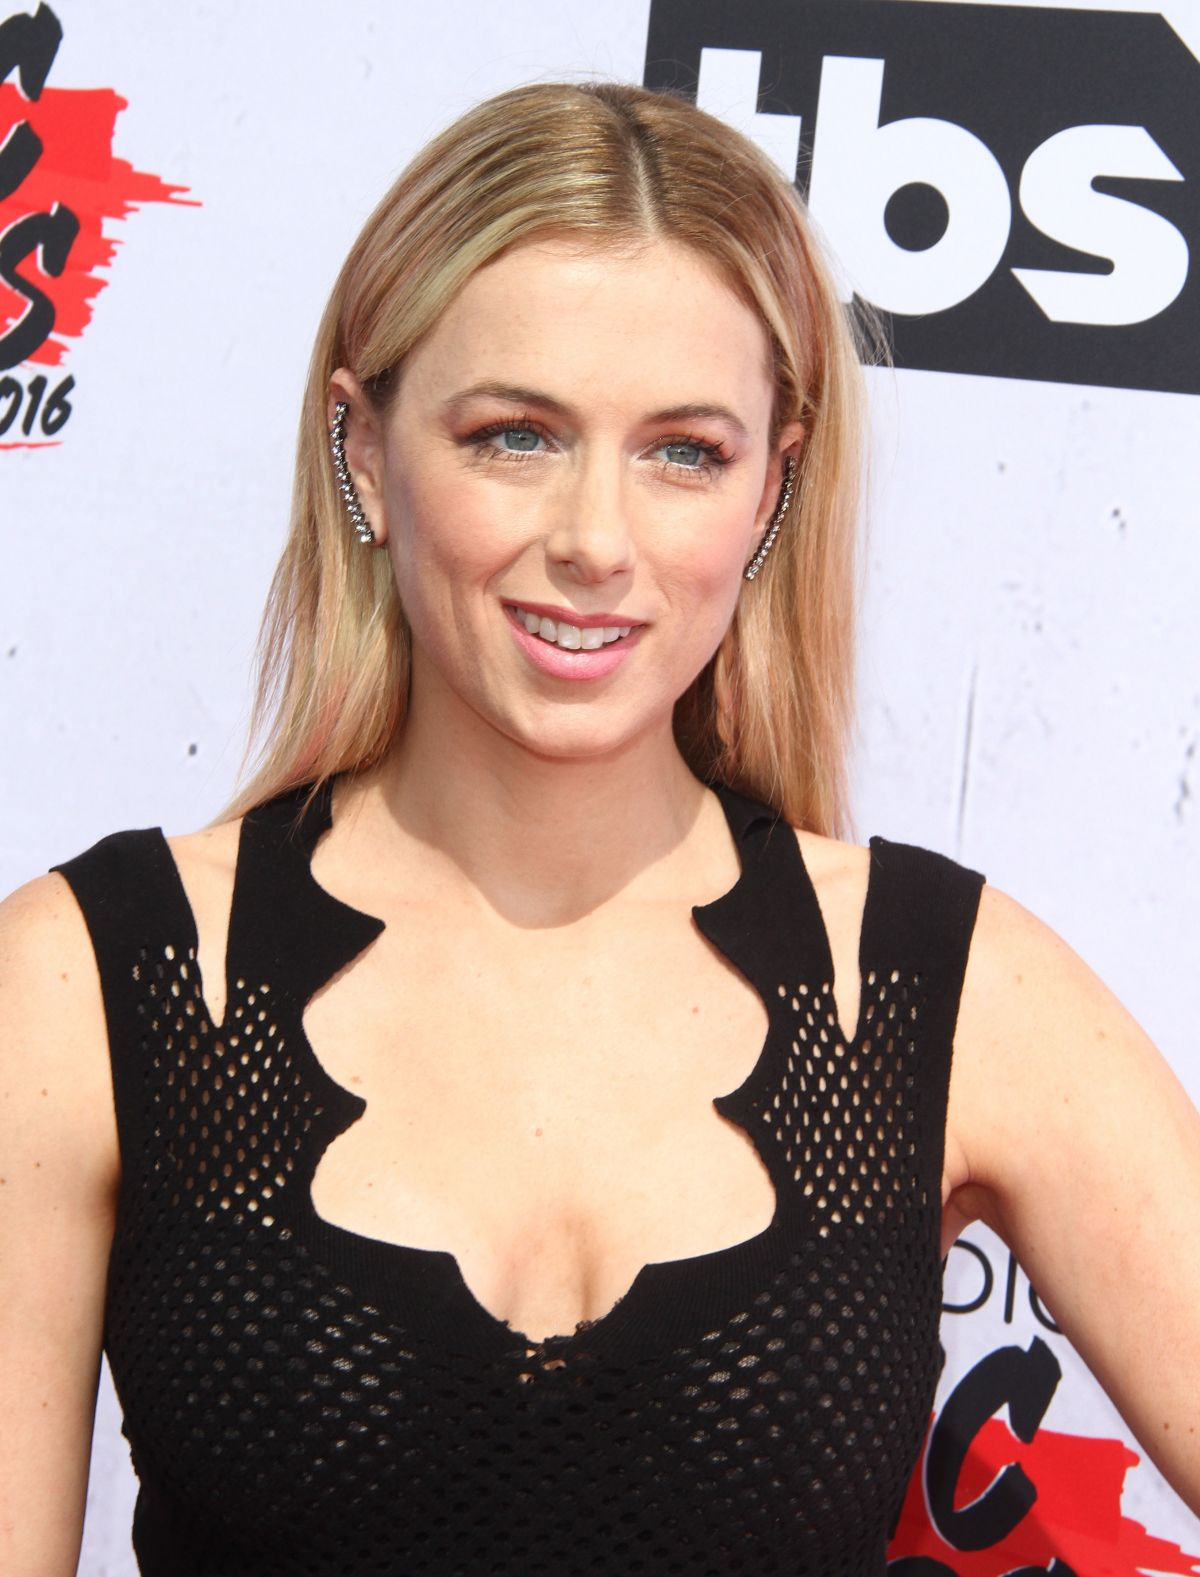 ILIZA SHLEZINGER at iHeartRadio Music Awards in Los Angeles 04/03/2016